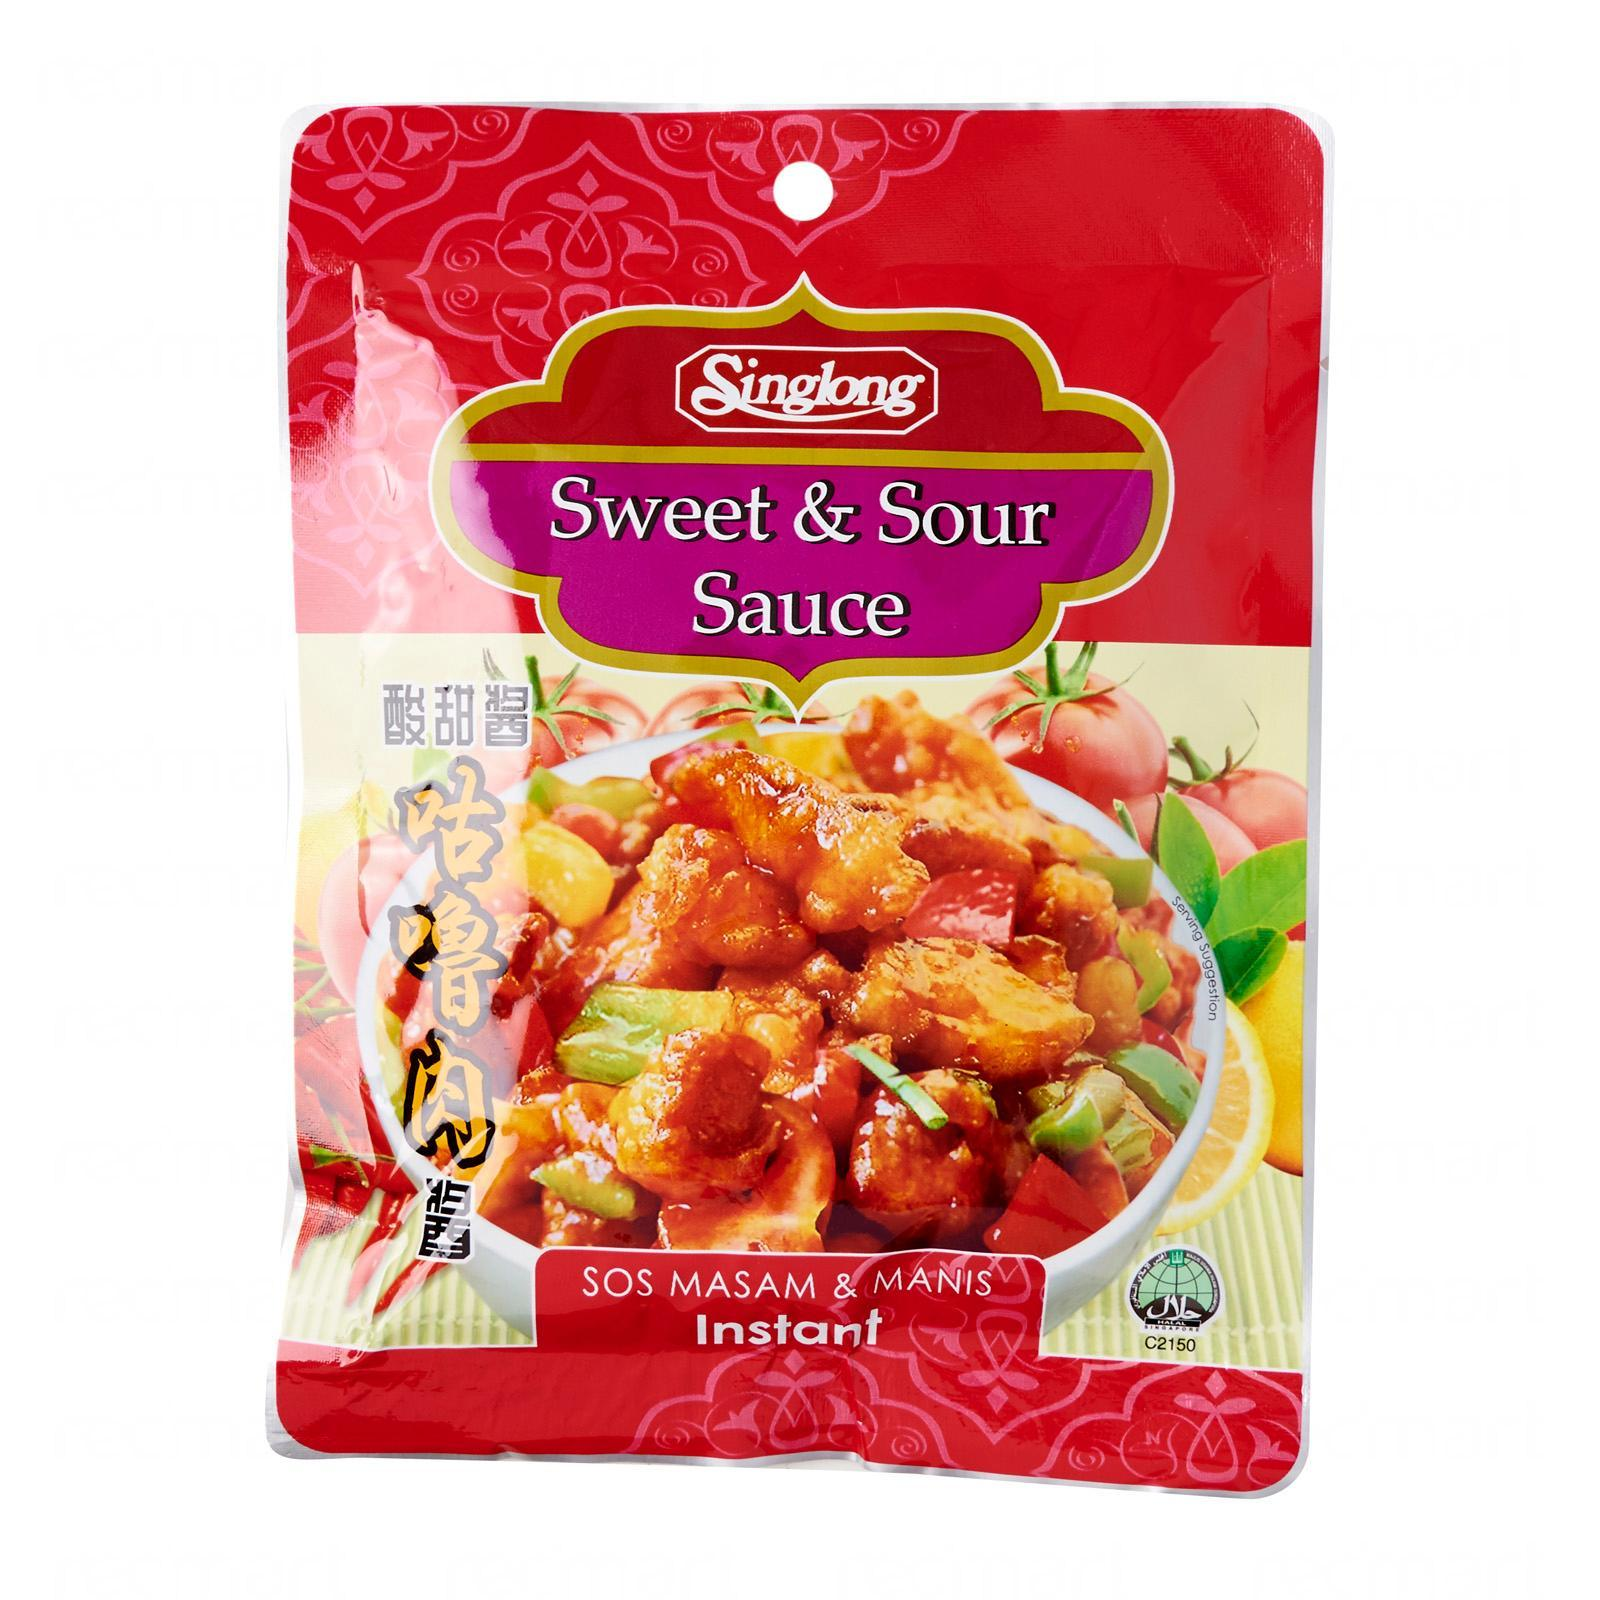 Sing Long Sweet And Sour Sauce